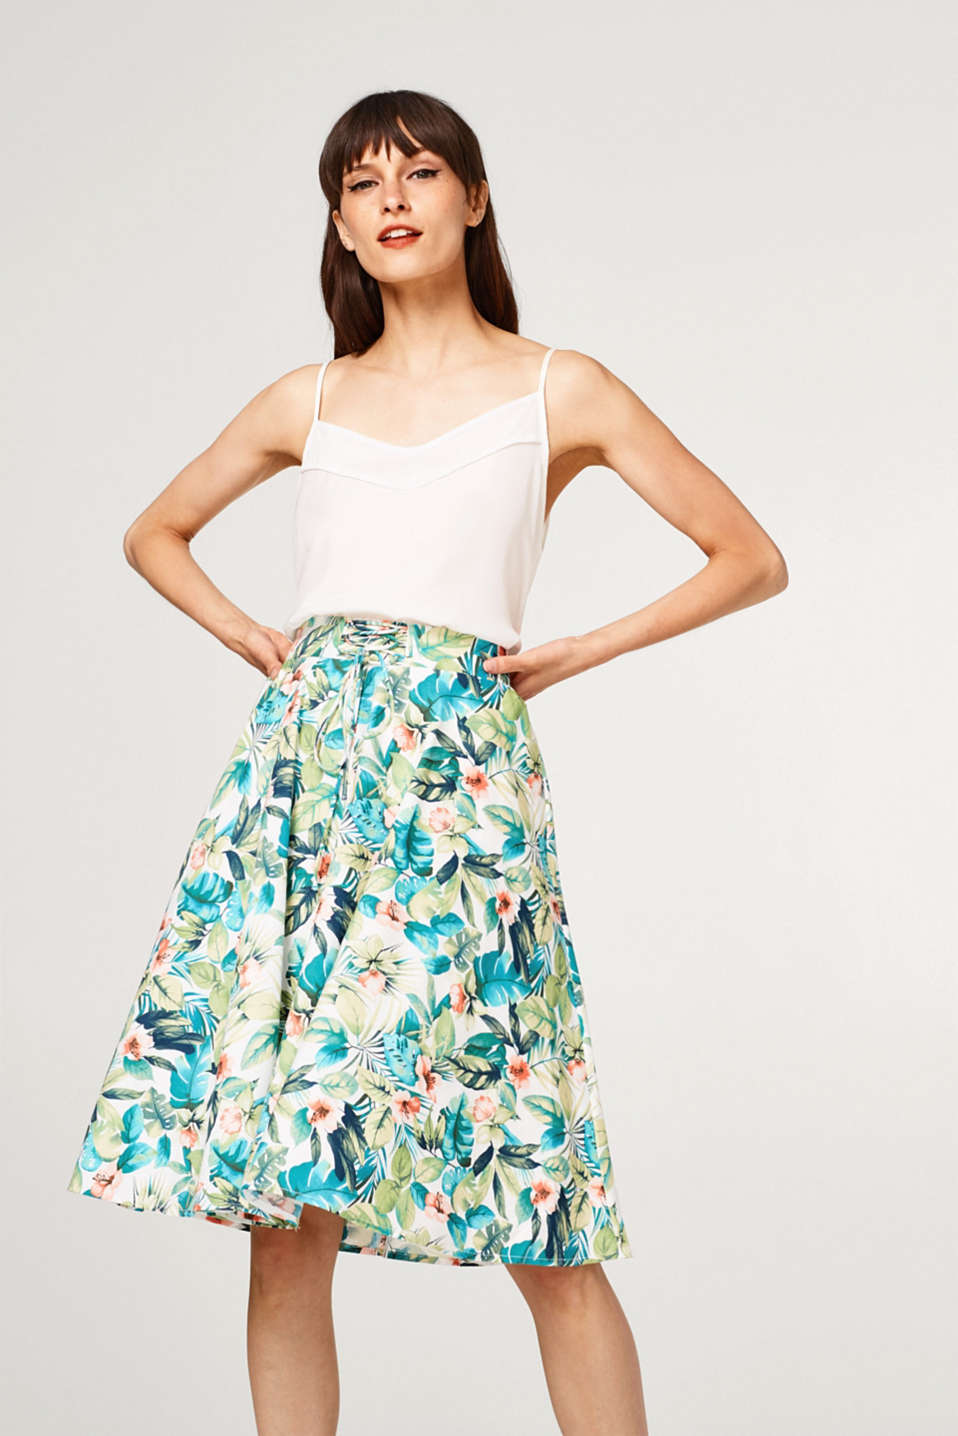 Esprit - Swirling printed skirt made of stretch cotton